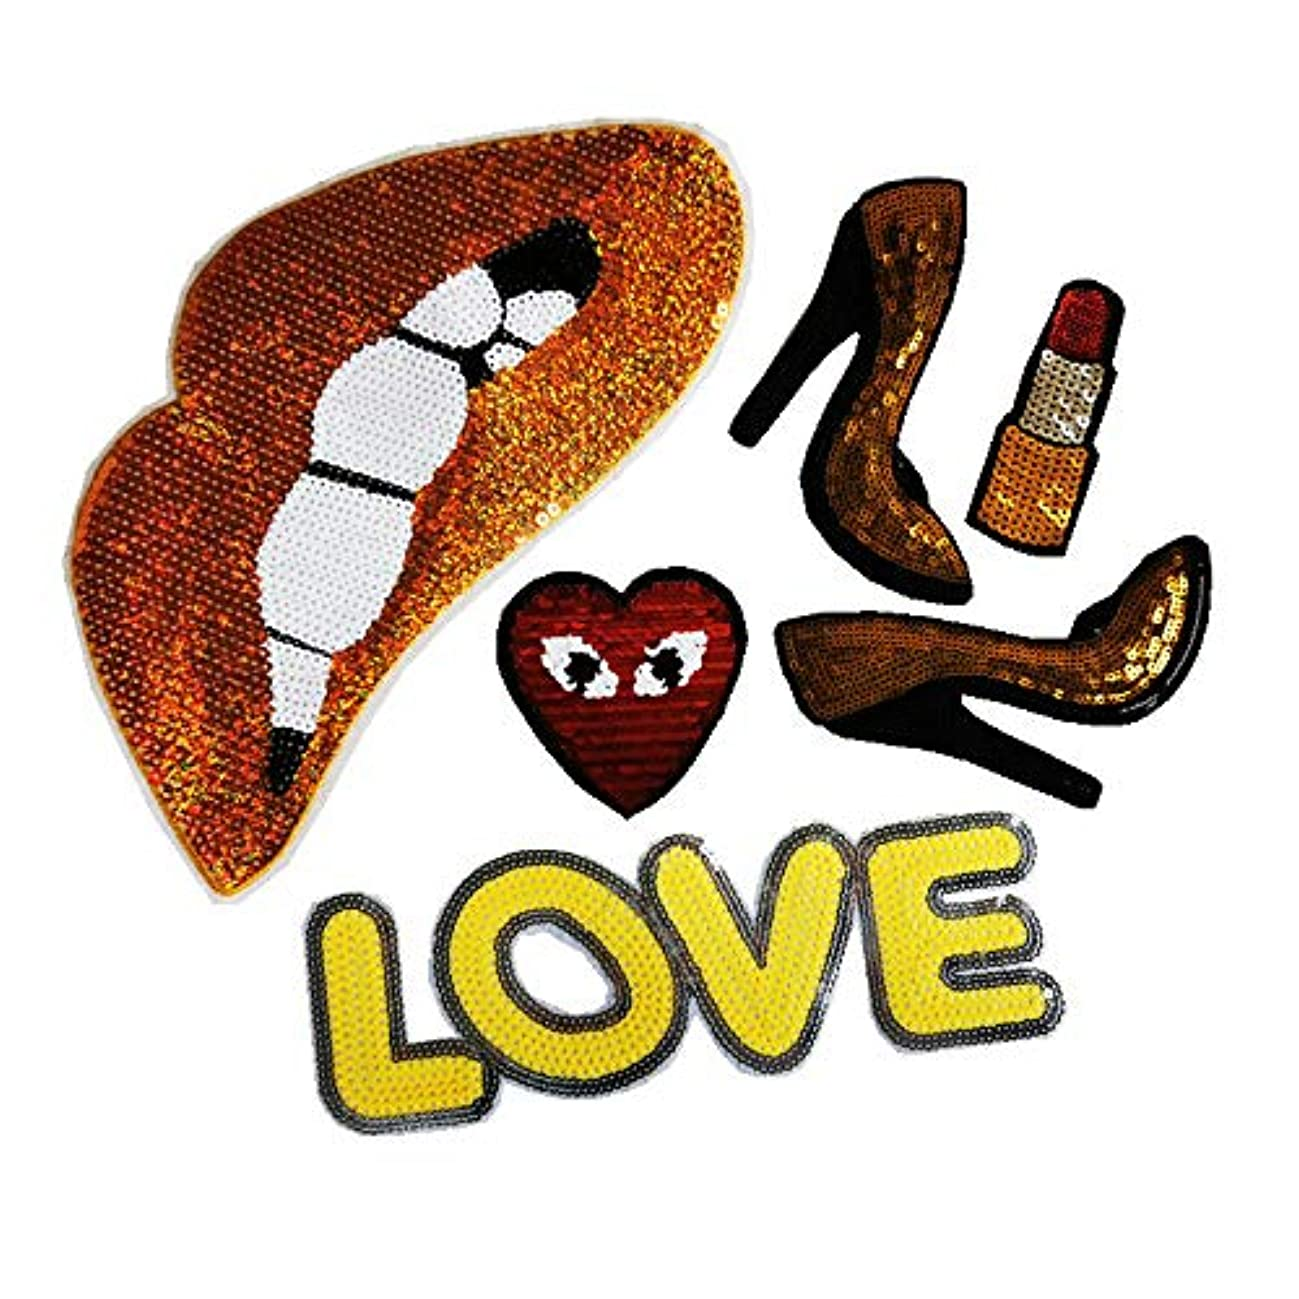 Peach Heart Sequins Lip Shoes Embroidered Iron Embroidery Badge Decals (Golden Bronzer)